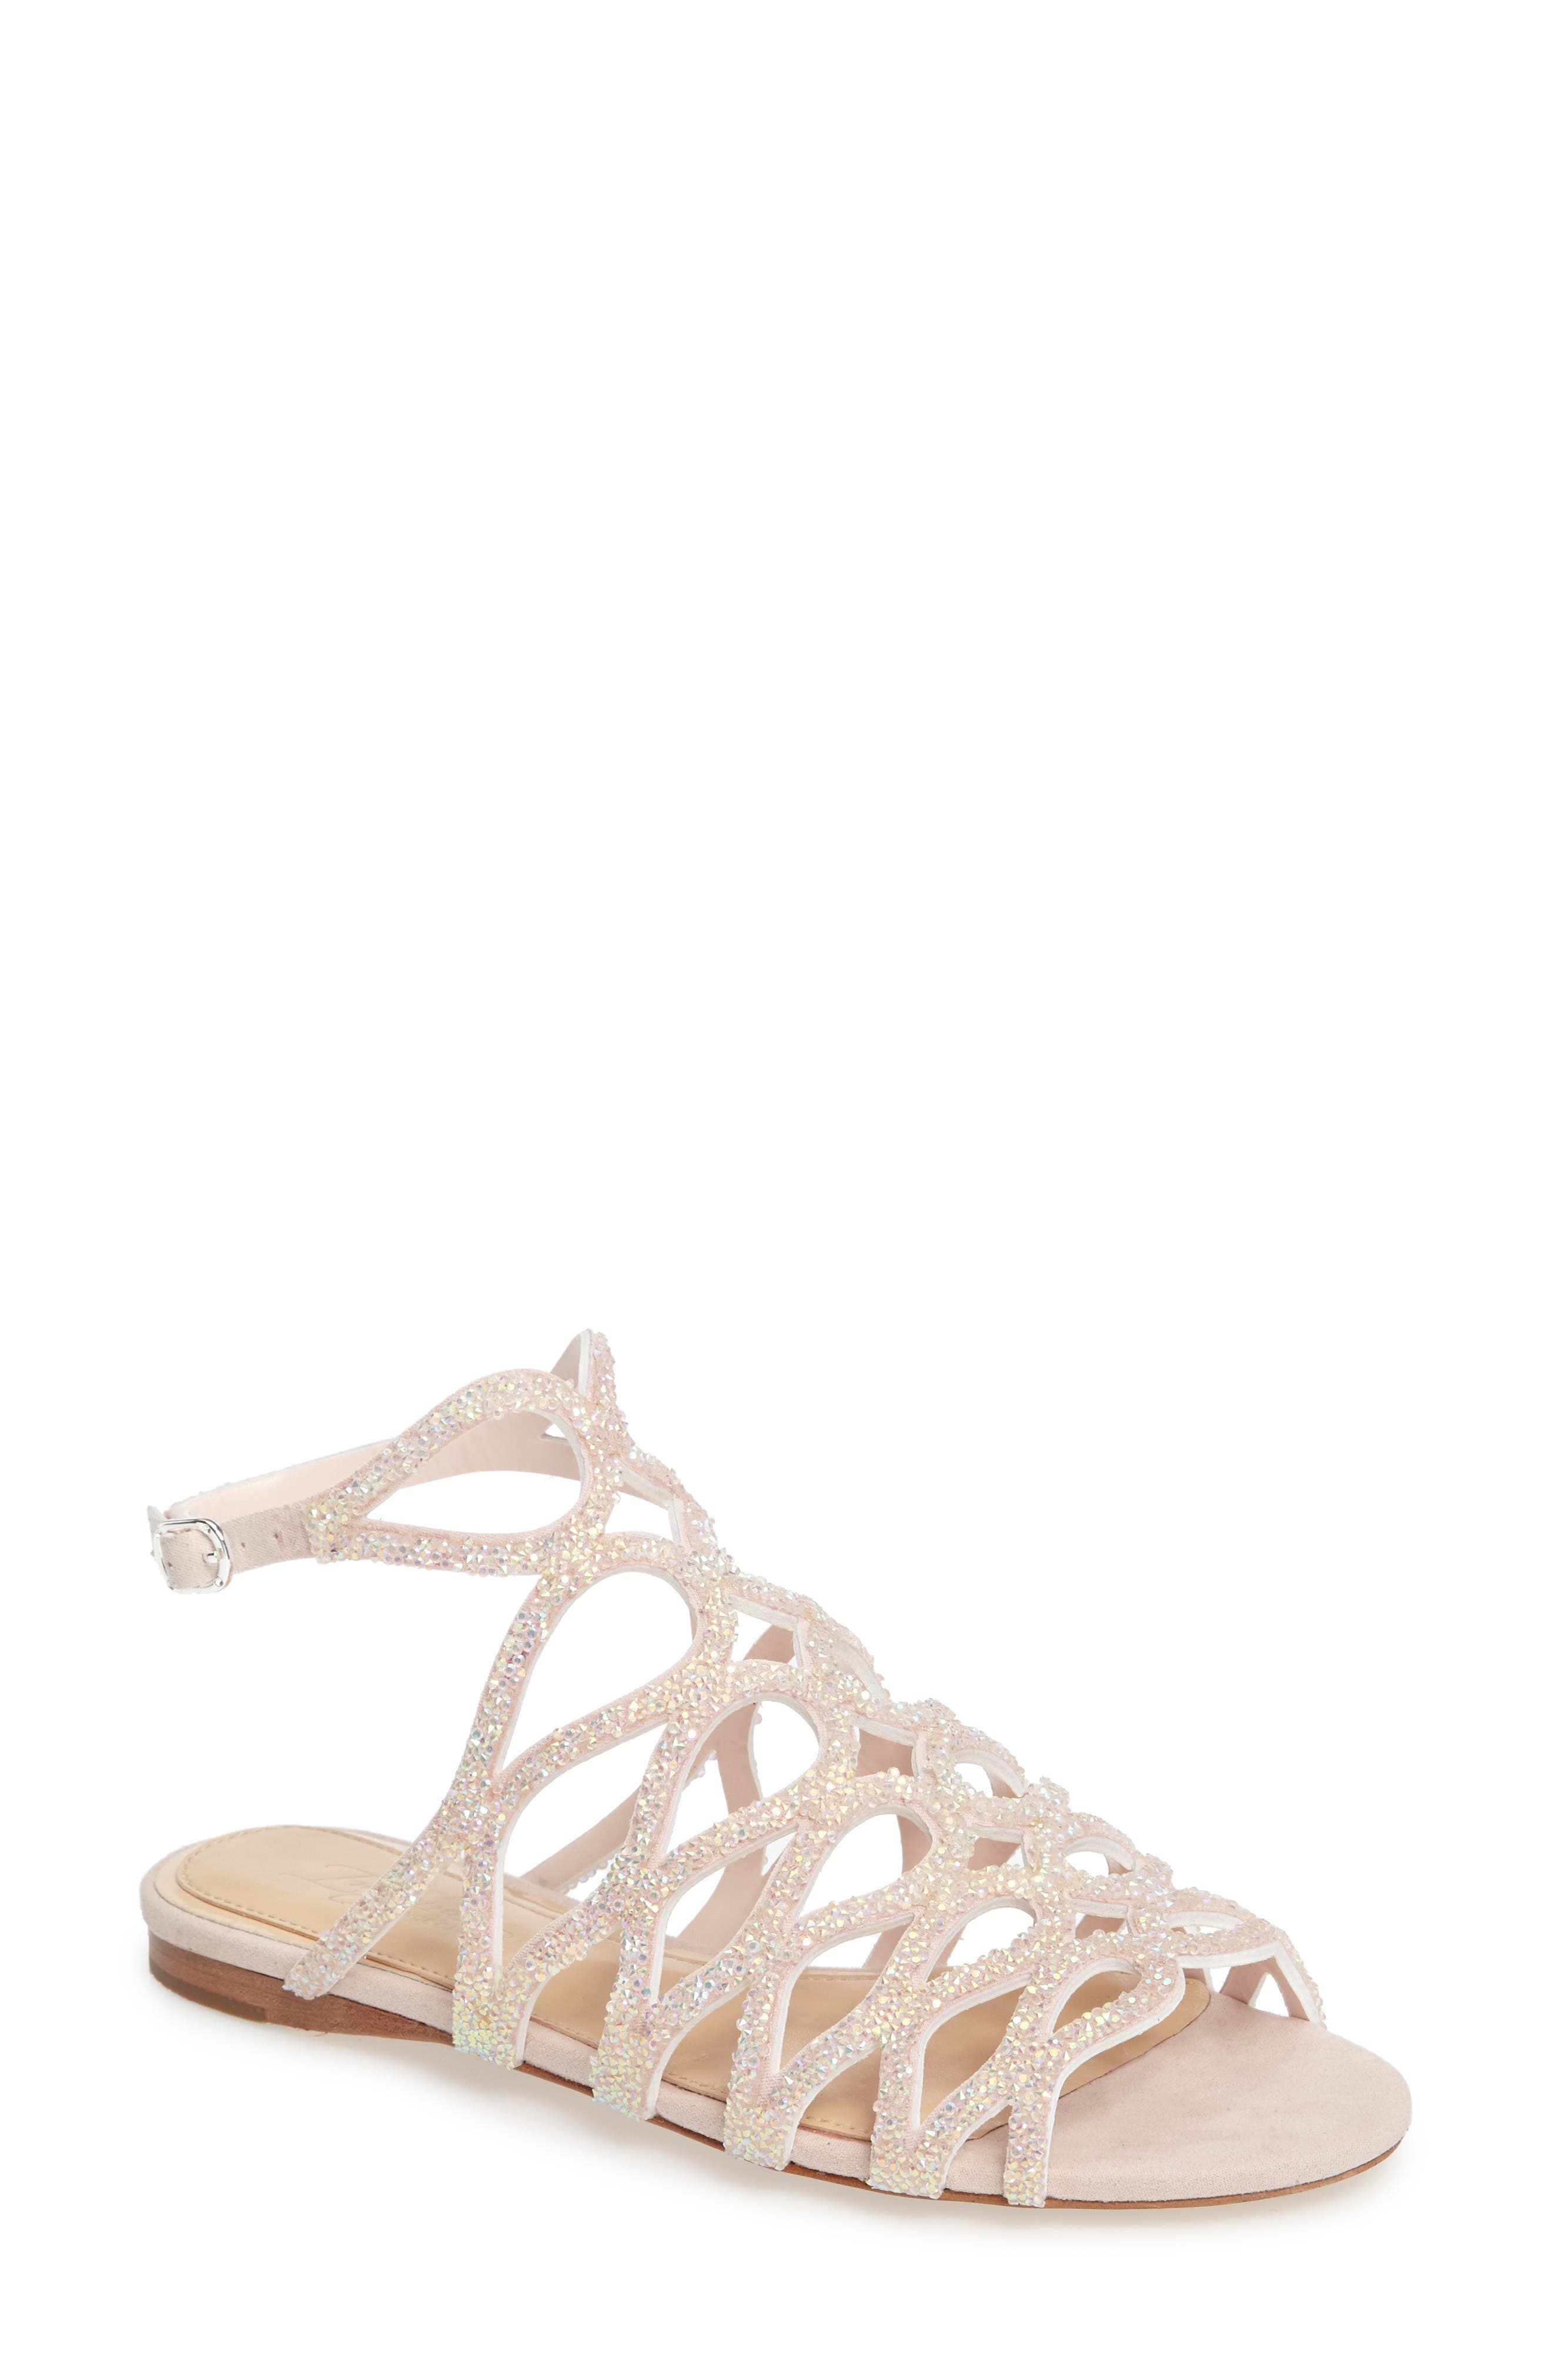 Imagine by Vince Camuto Ralee Glitter Sandal (Women)